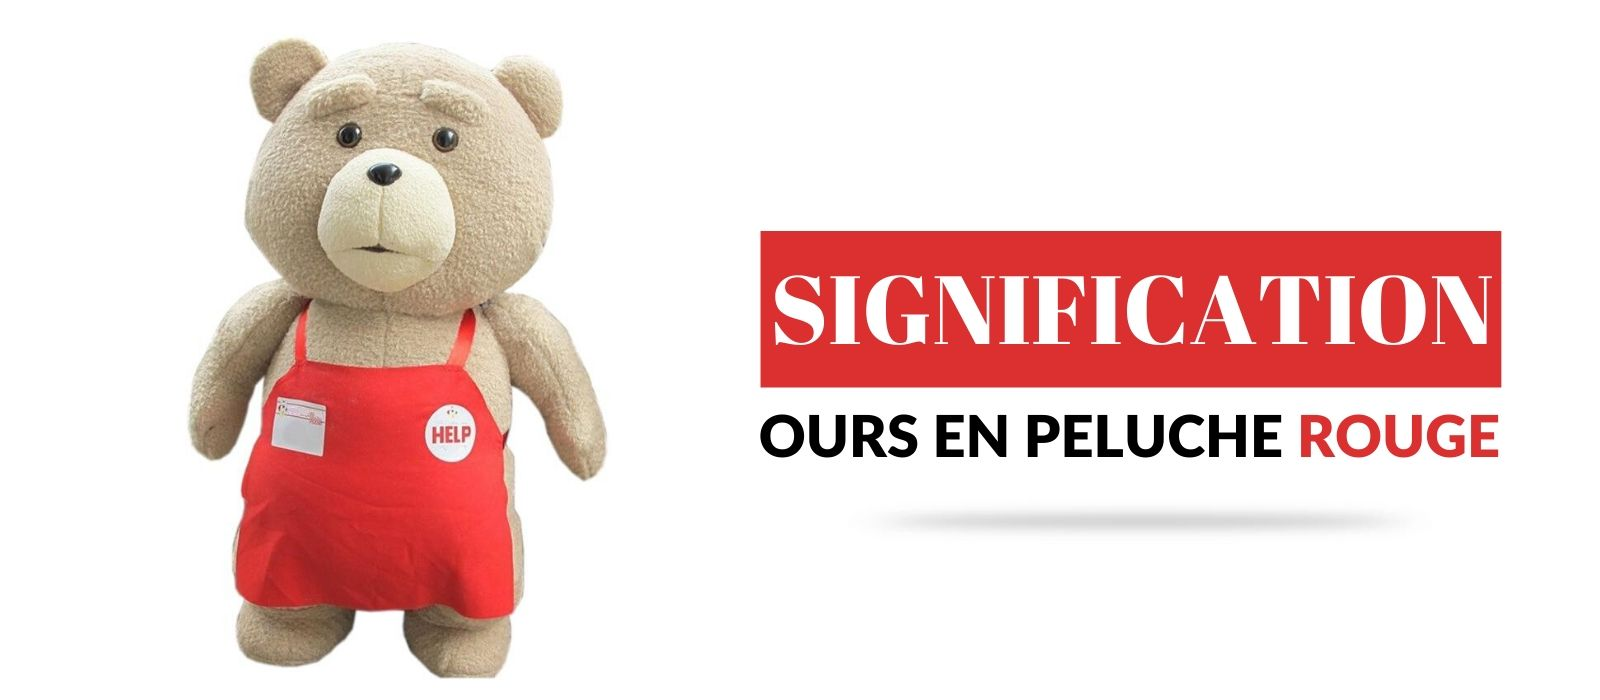 Signification ours en peluche Rouge